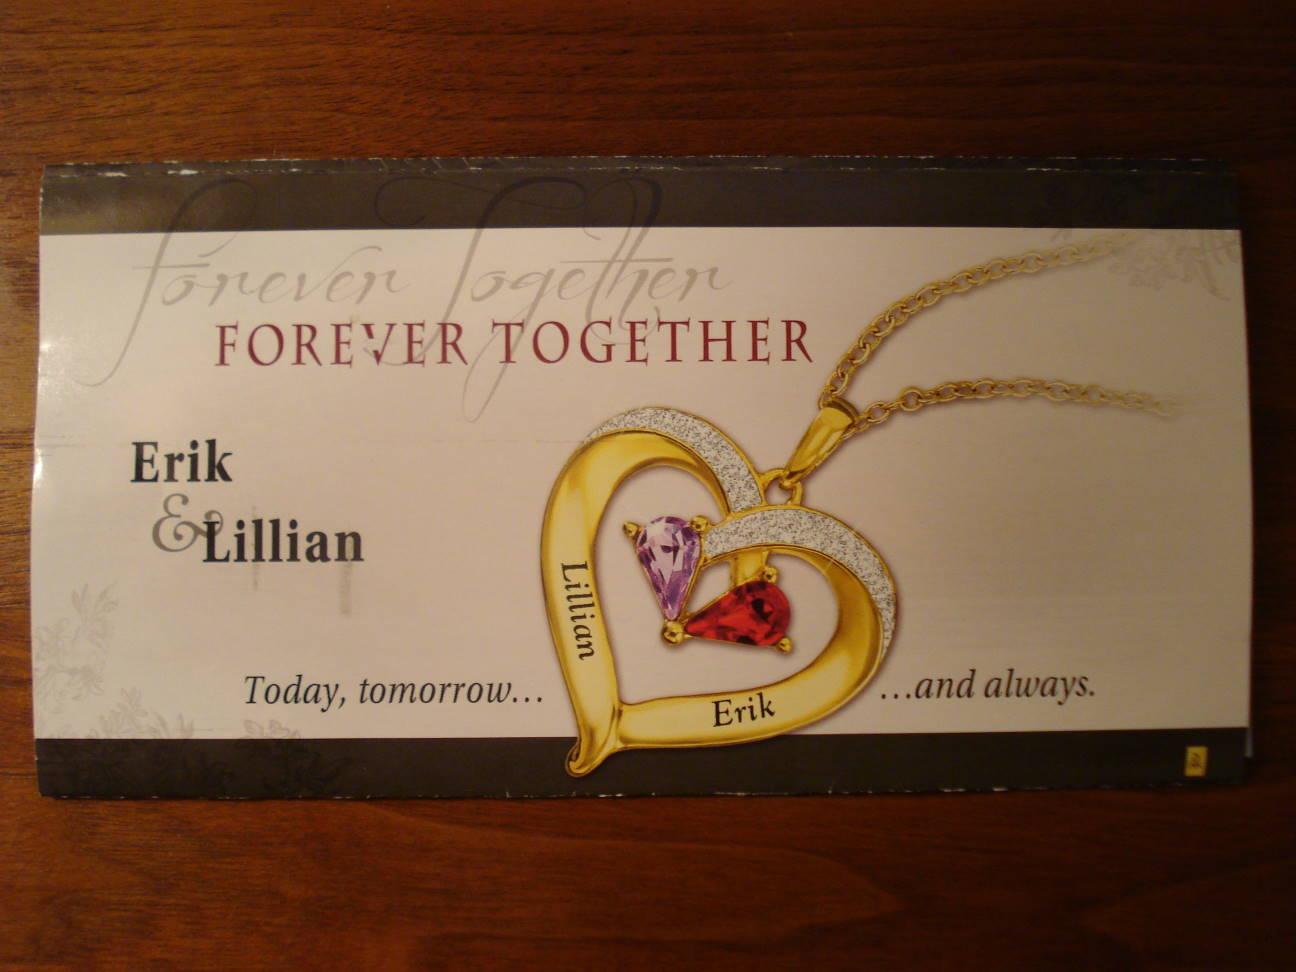 """Forever Together - Erik & Lillian"" - advertising mailer, October 2016."